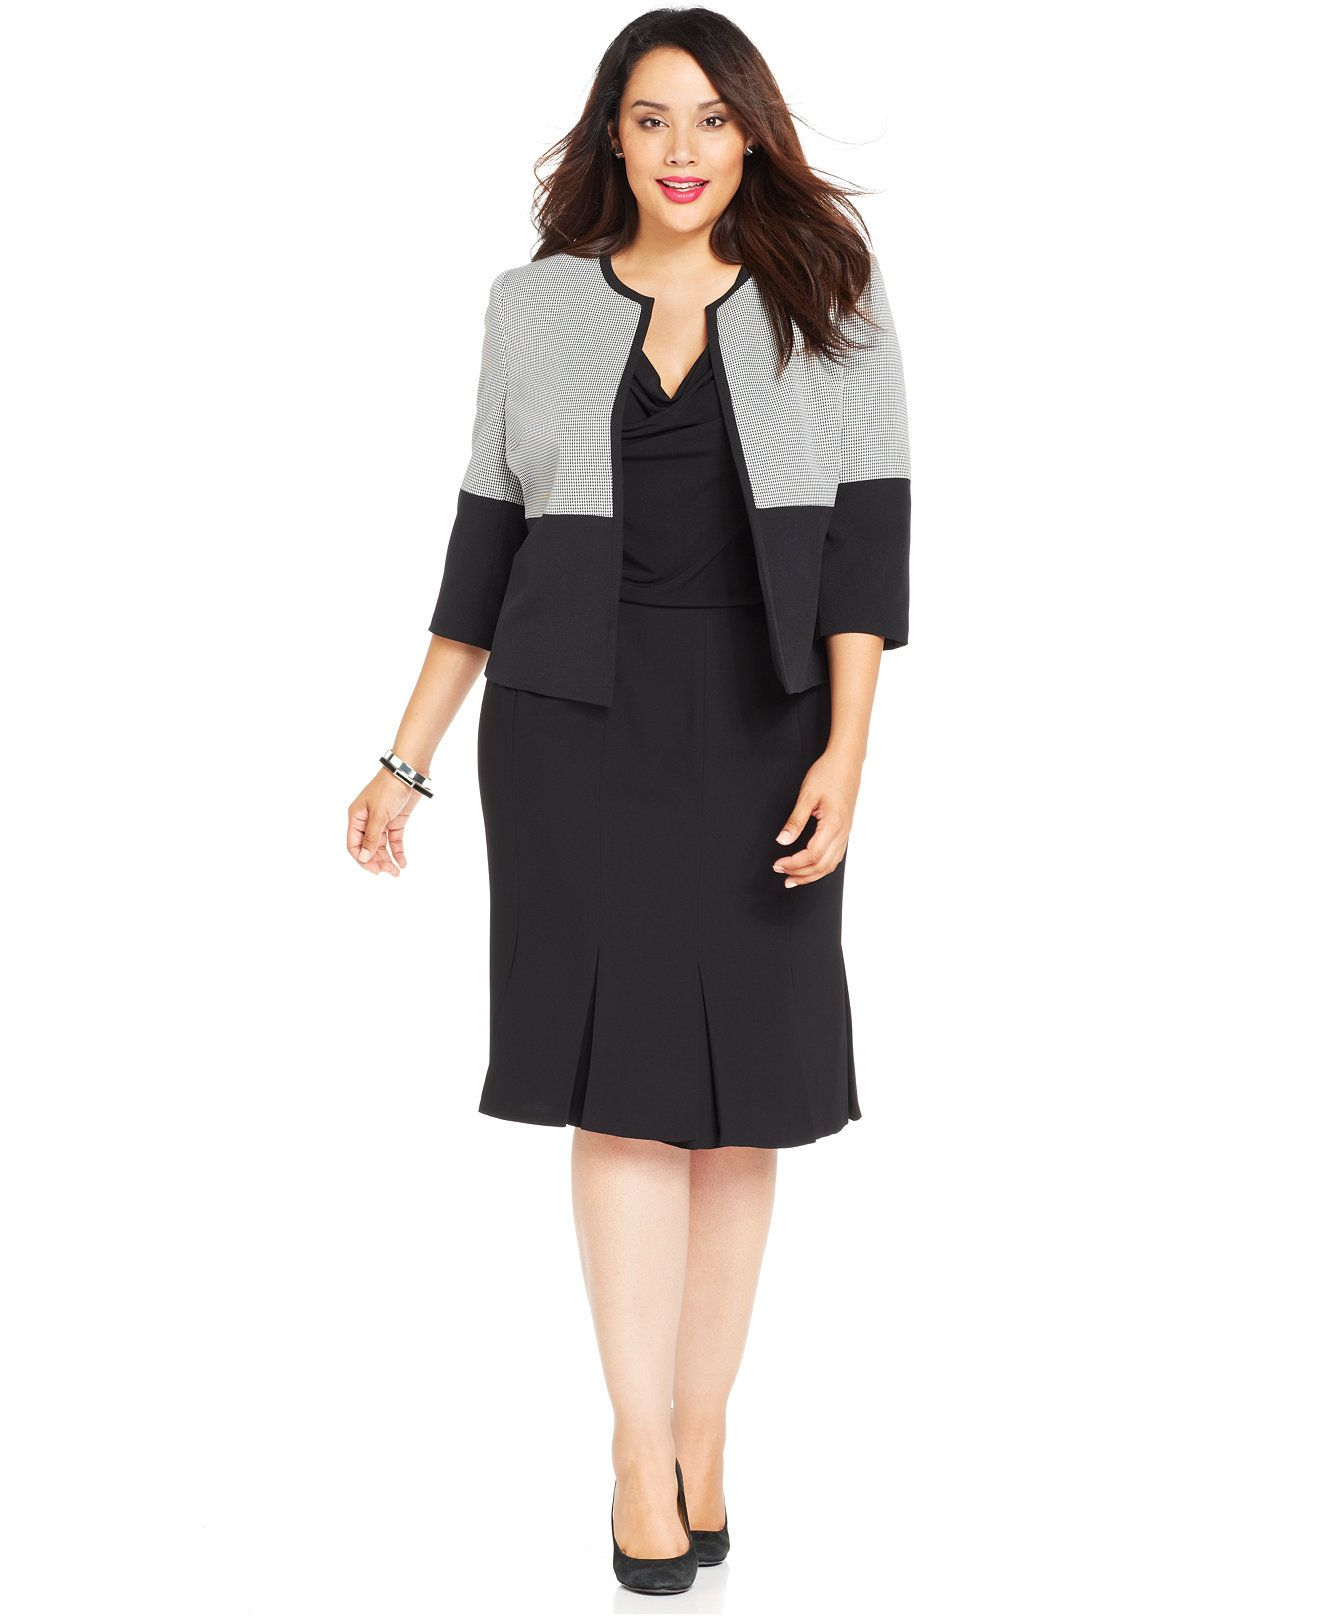 Kasper Plus Size Houndstooth Jacket Cowl Neck Top Pleated Skirt